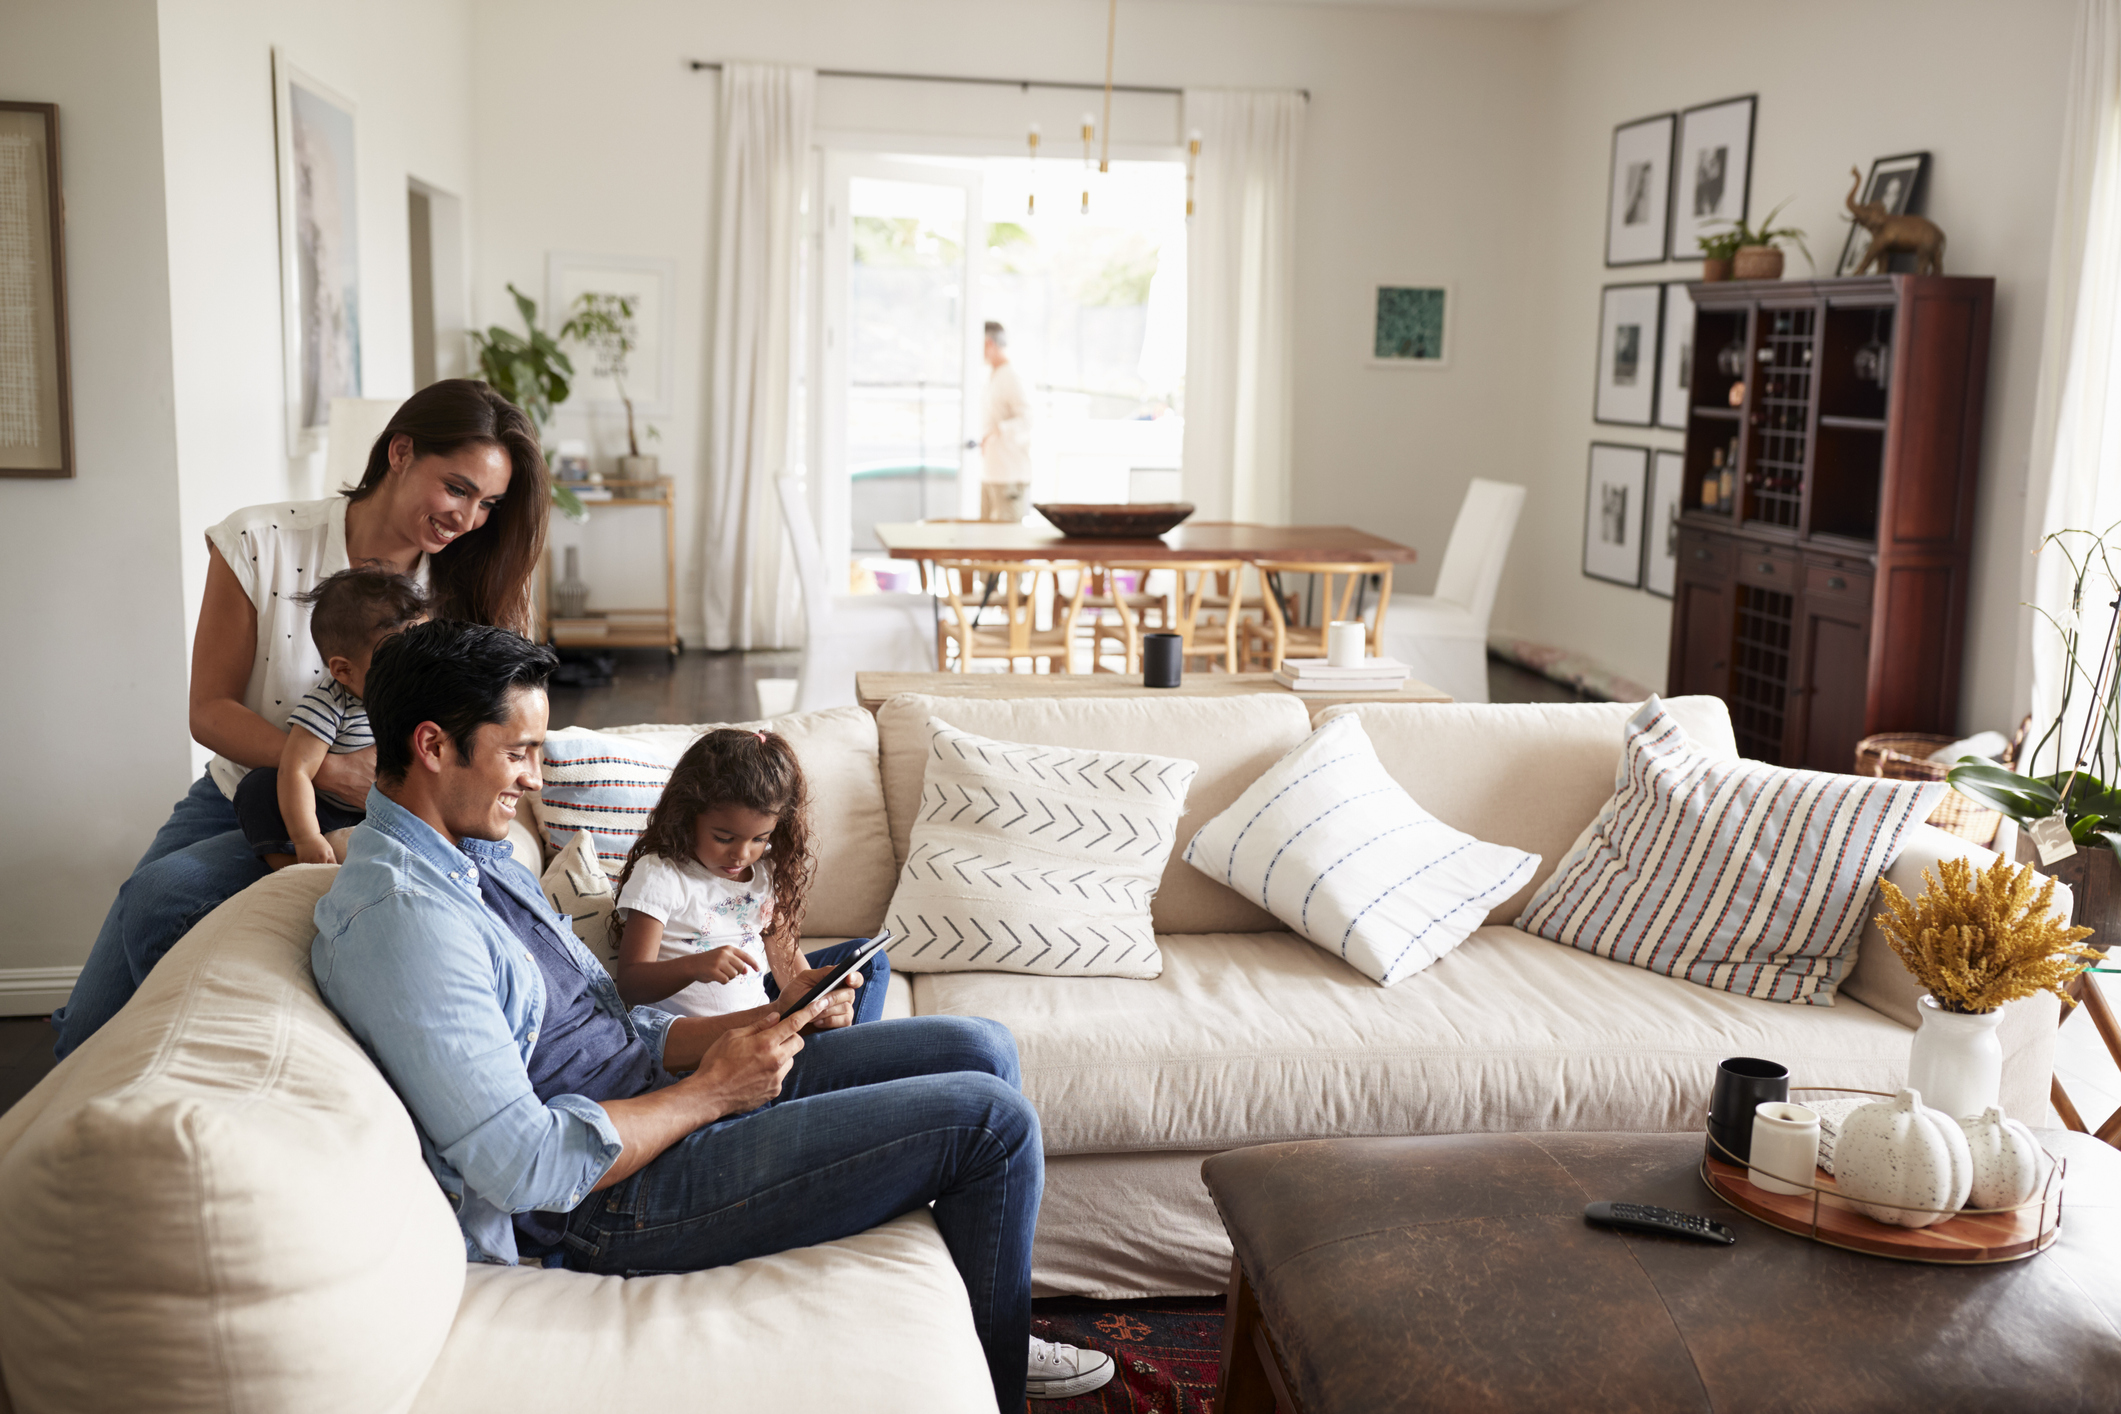 Young family using Cox internet in their living room